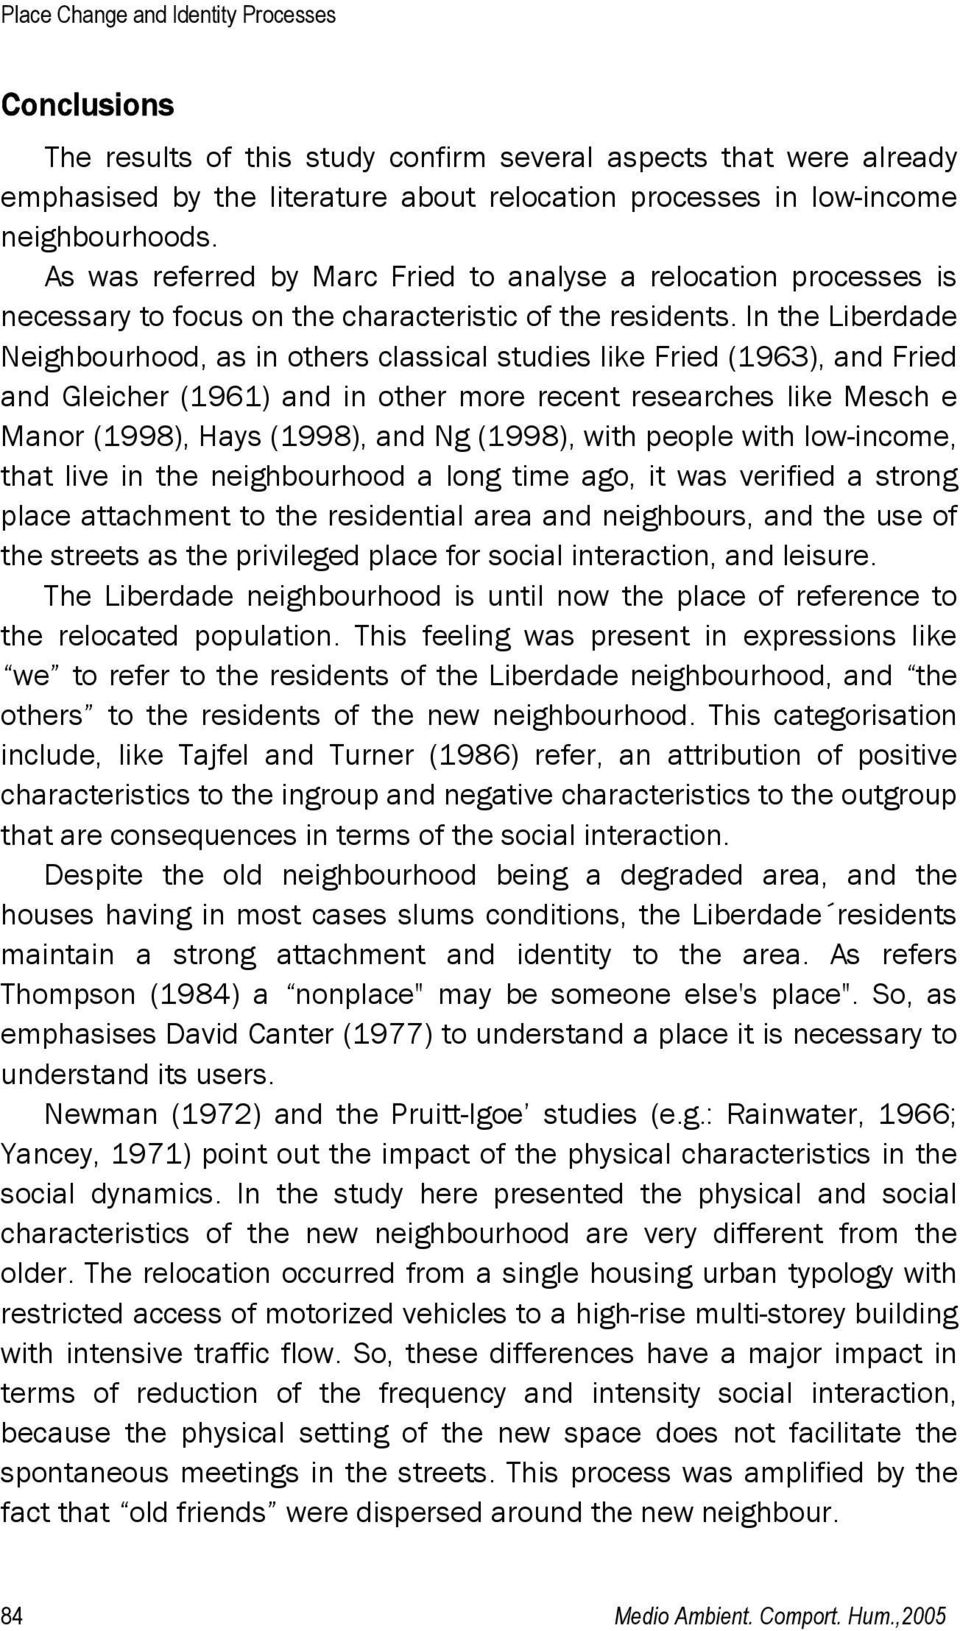 In the Liberdade Neighbourhood, as in others classical studies like Fried (1963), and Fried and Gleicher (1961) and in other more recent researches like Mesch e Manor (1998), Hays (1998), and Ng